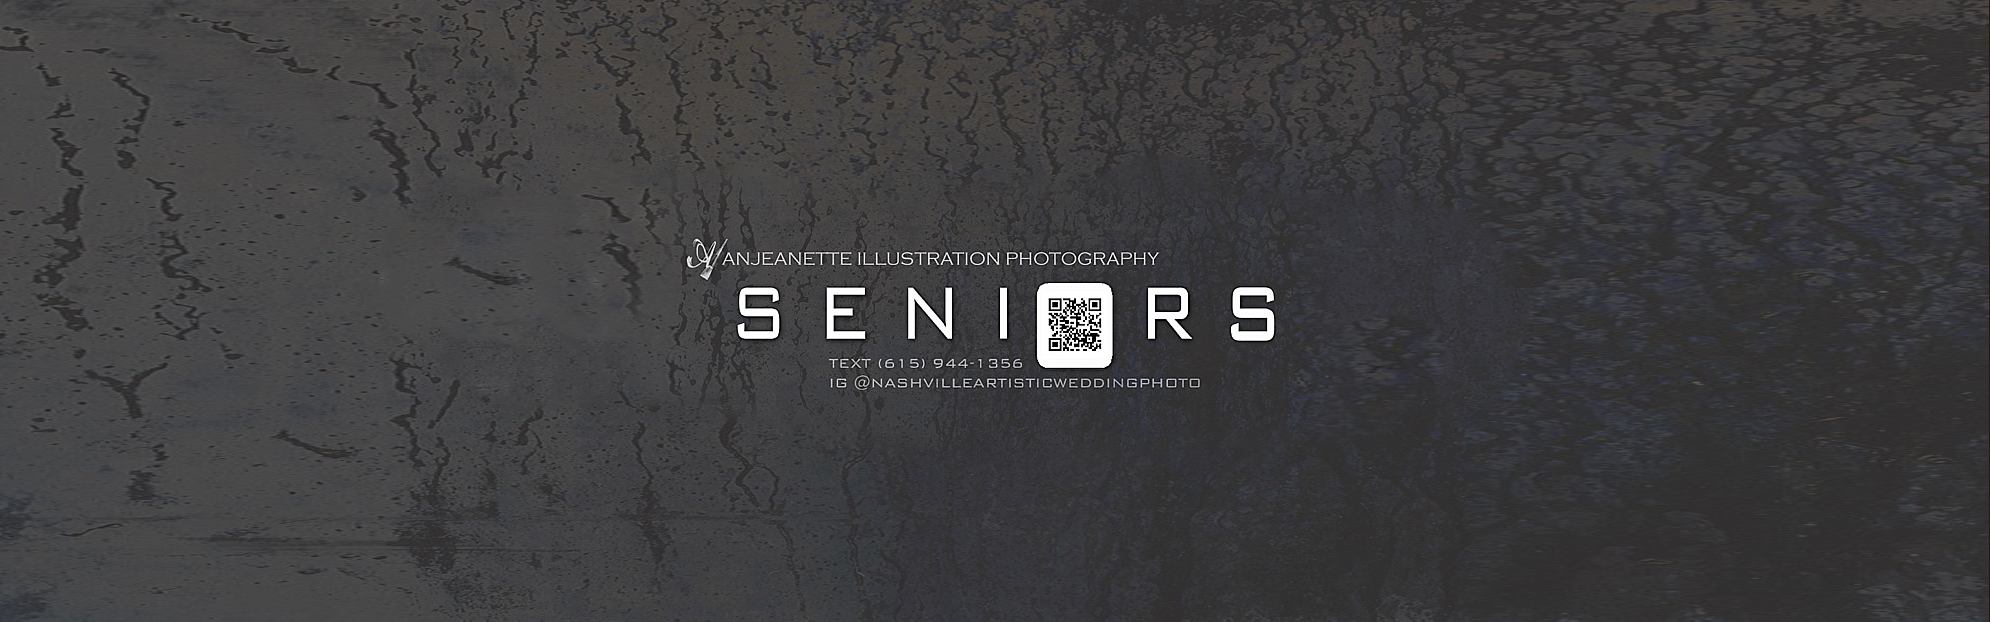 Hendersonville, Tn Senior Pictures by Anjeanette Illustration Photography